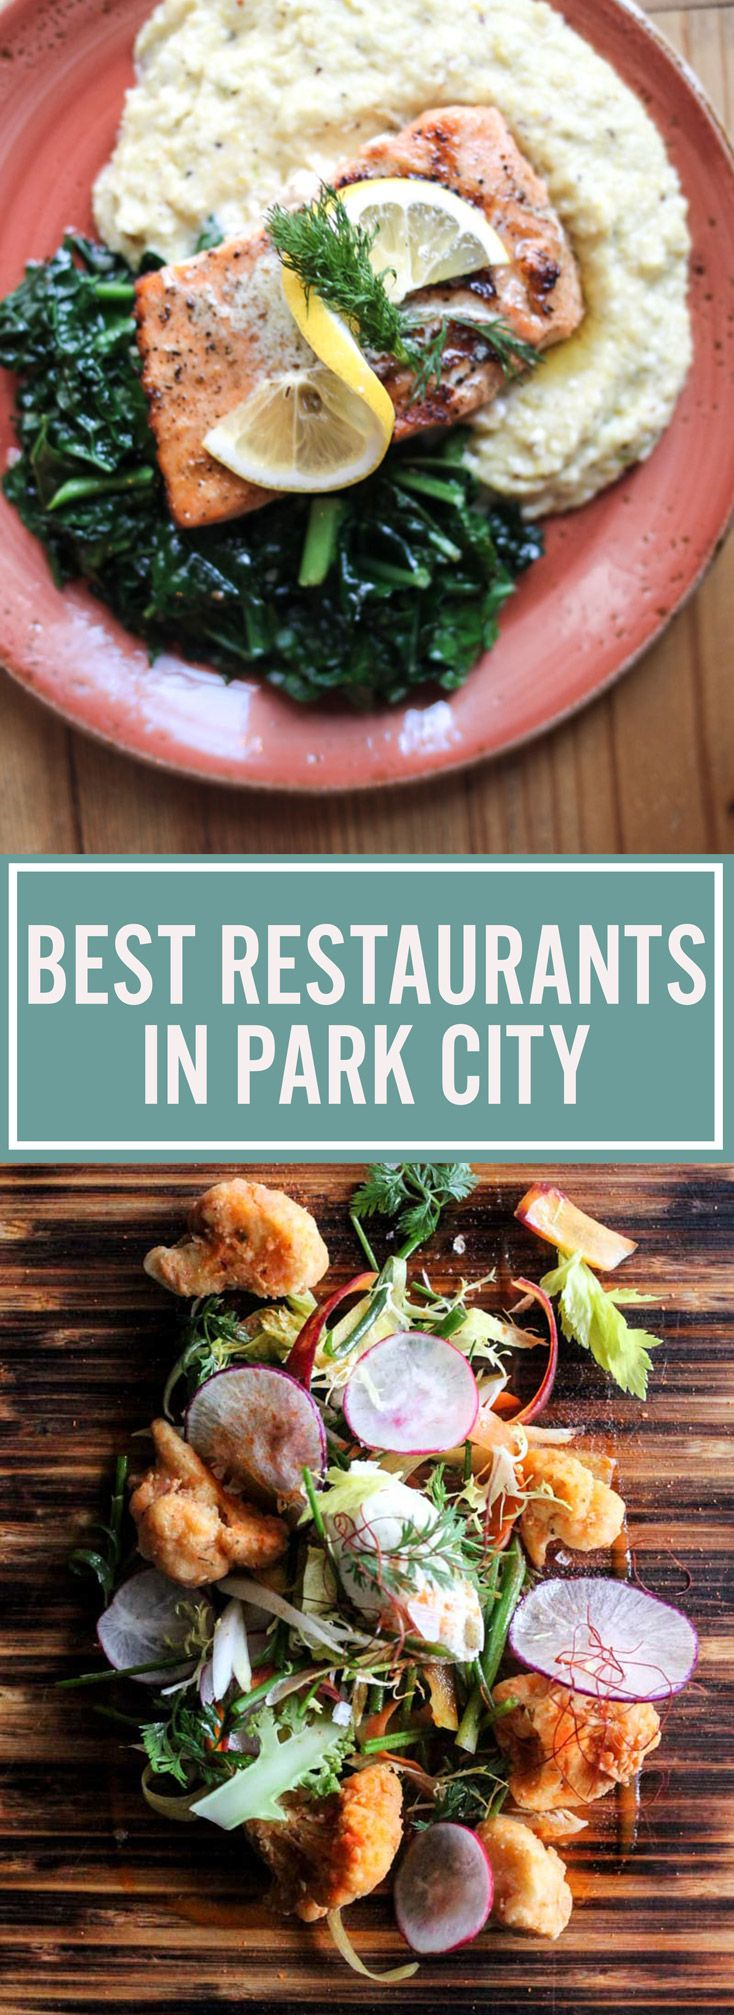 best restaurants in park city 15 top picks from a local female foodie. Black Bedroom Furniture Sets. Home Design Ideas